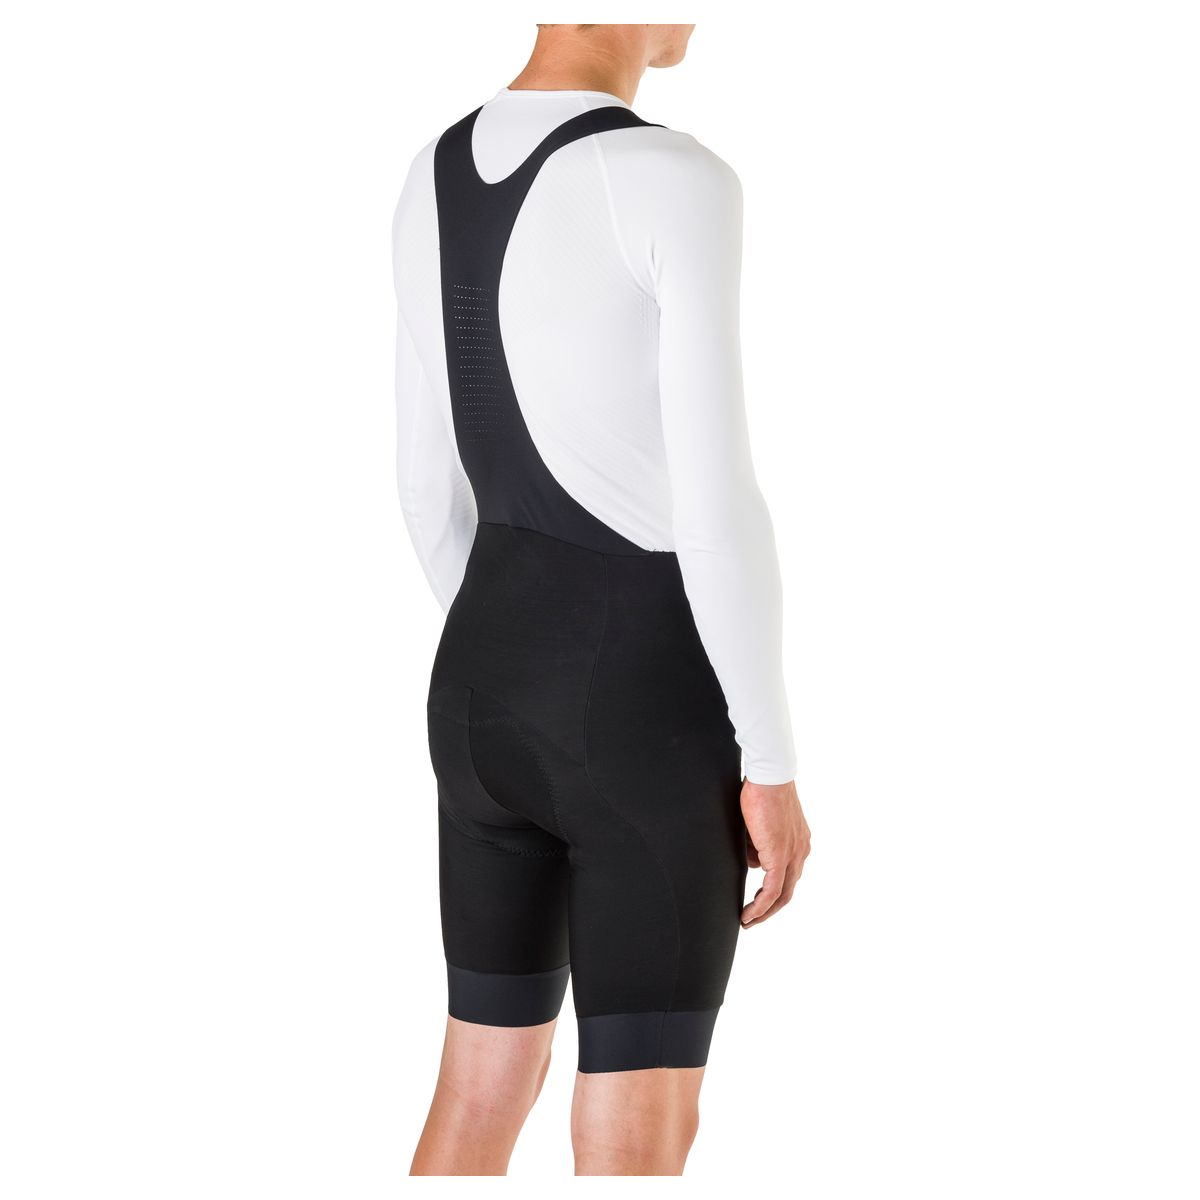 Winter Bibshort Six6 Heren DWR fit example